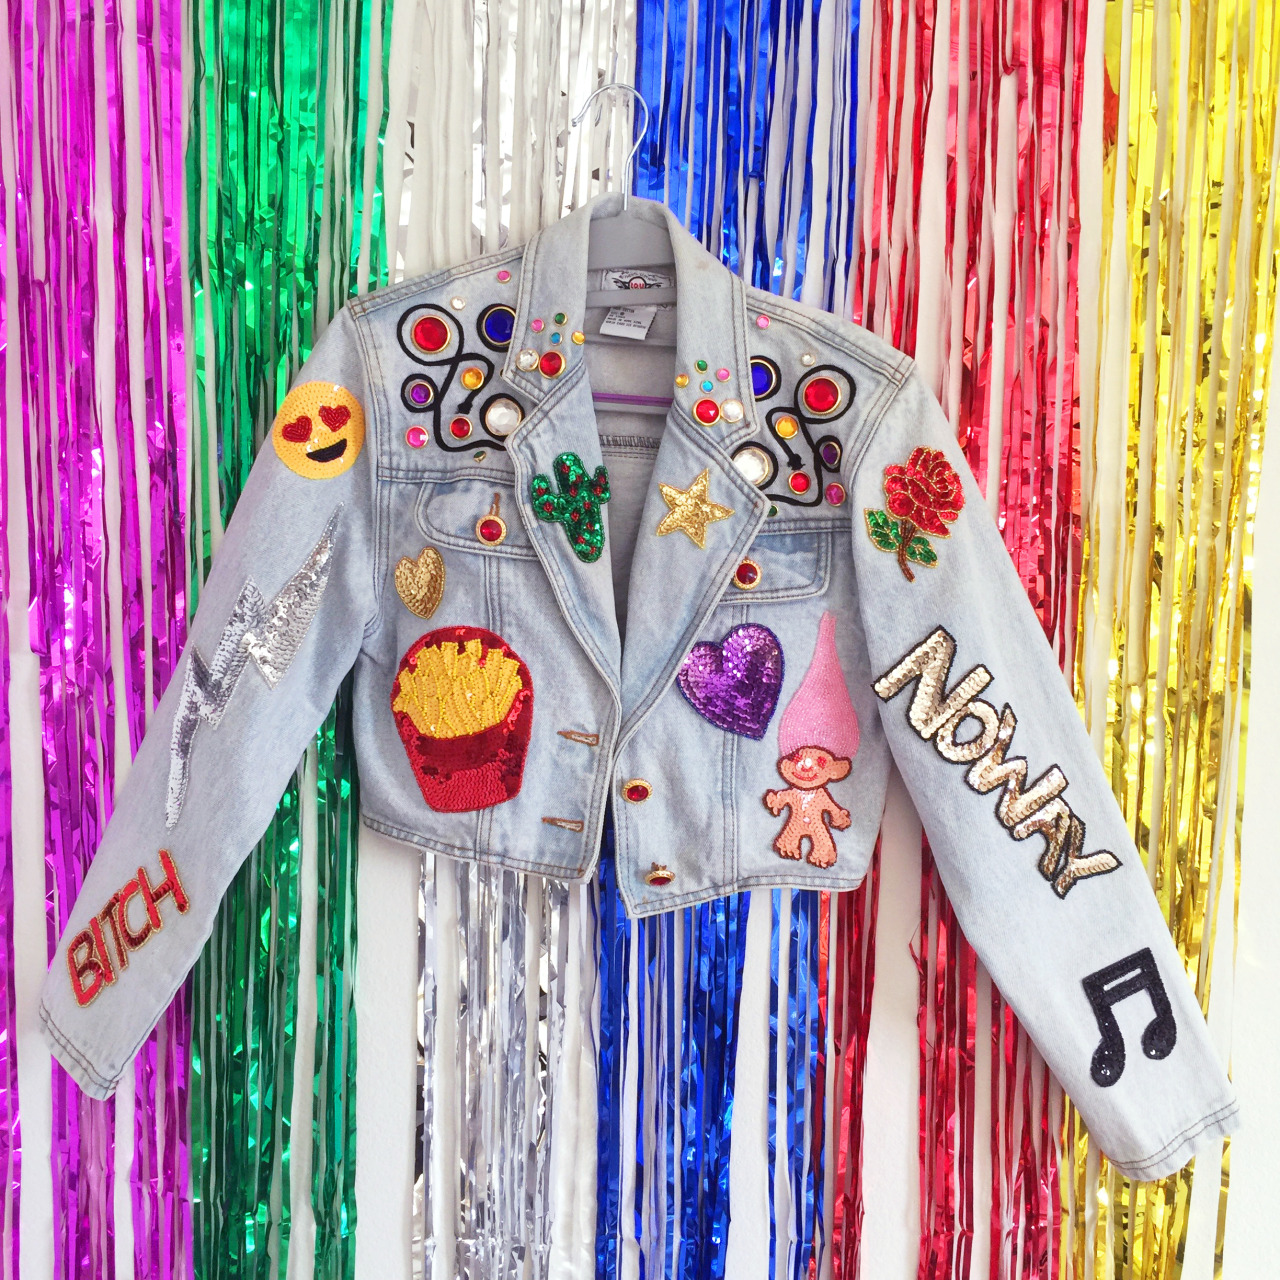 Denim Jacket and patches, Fashion, Style, Denim, embroiderary